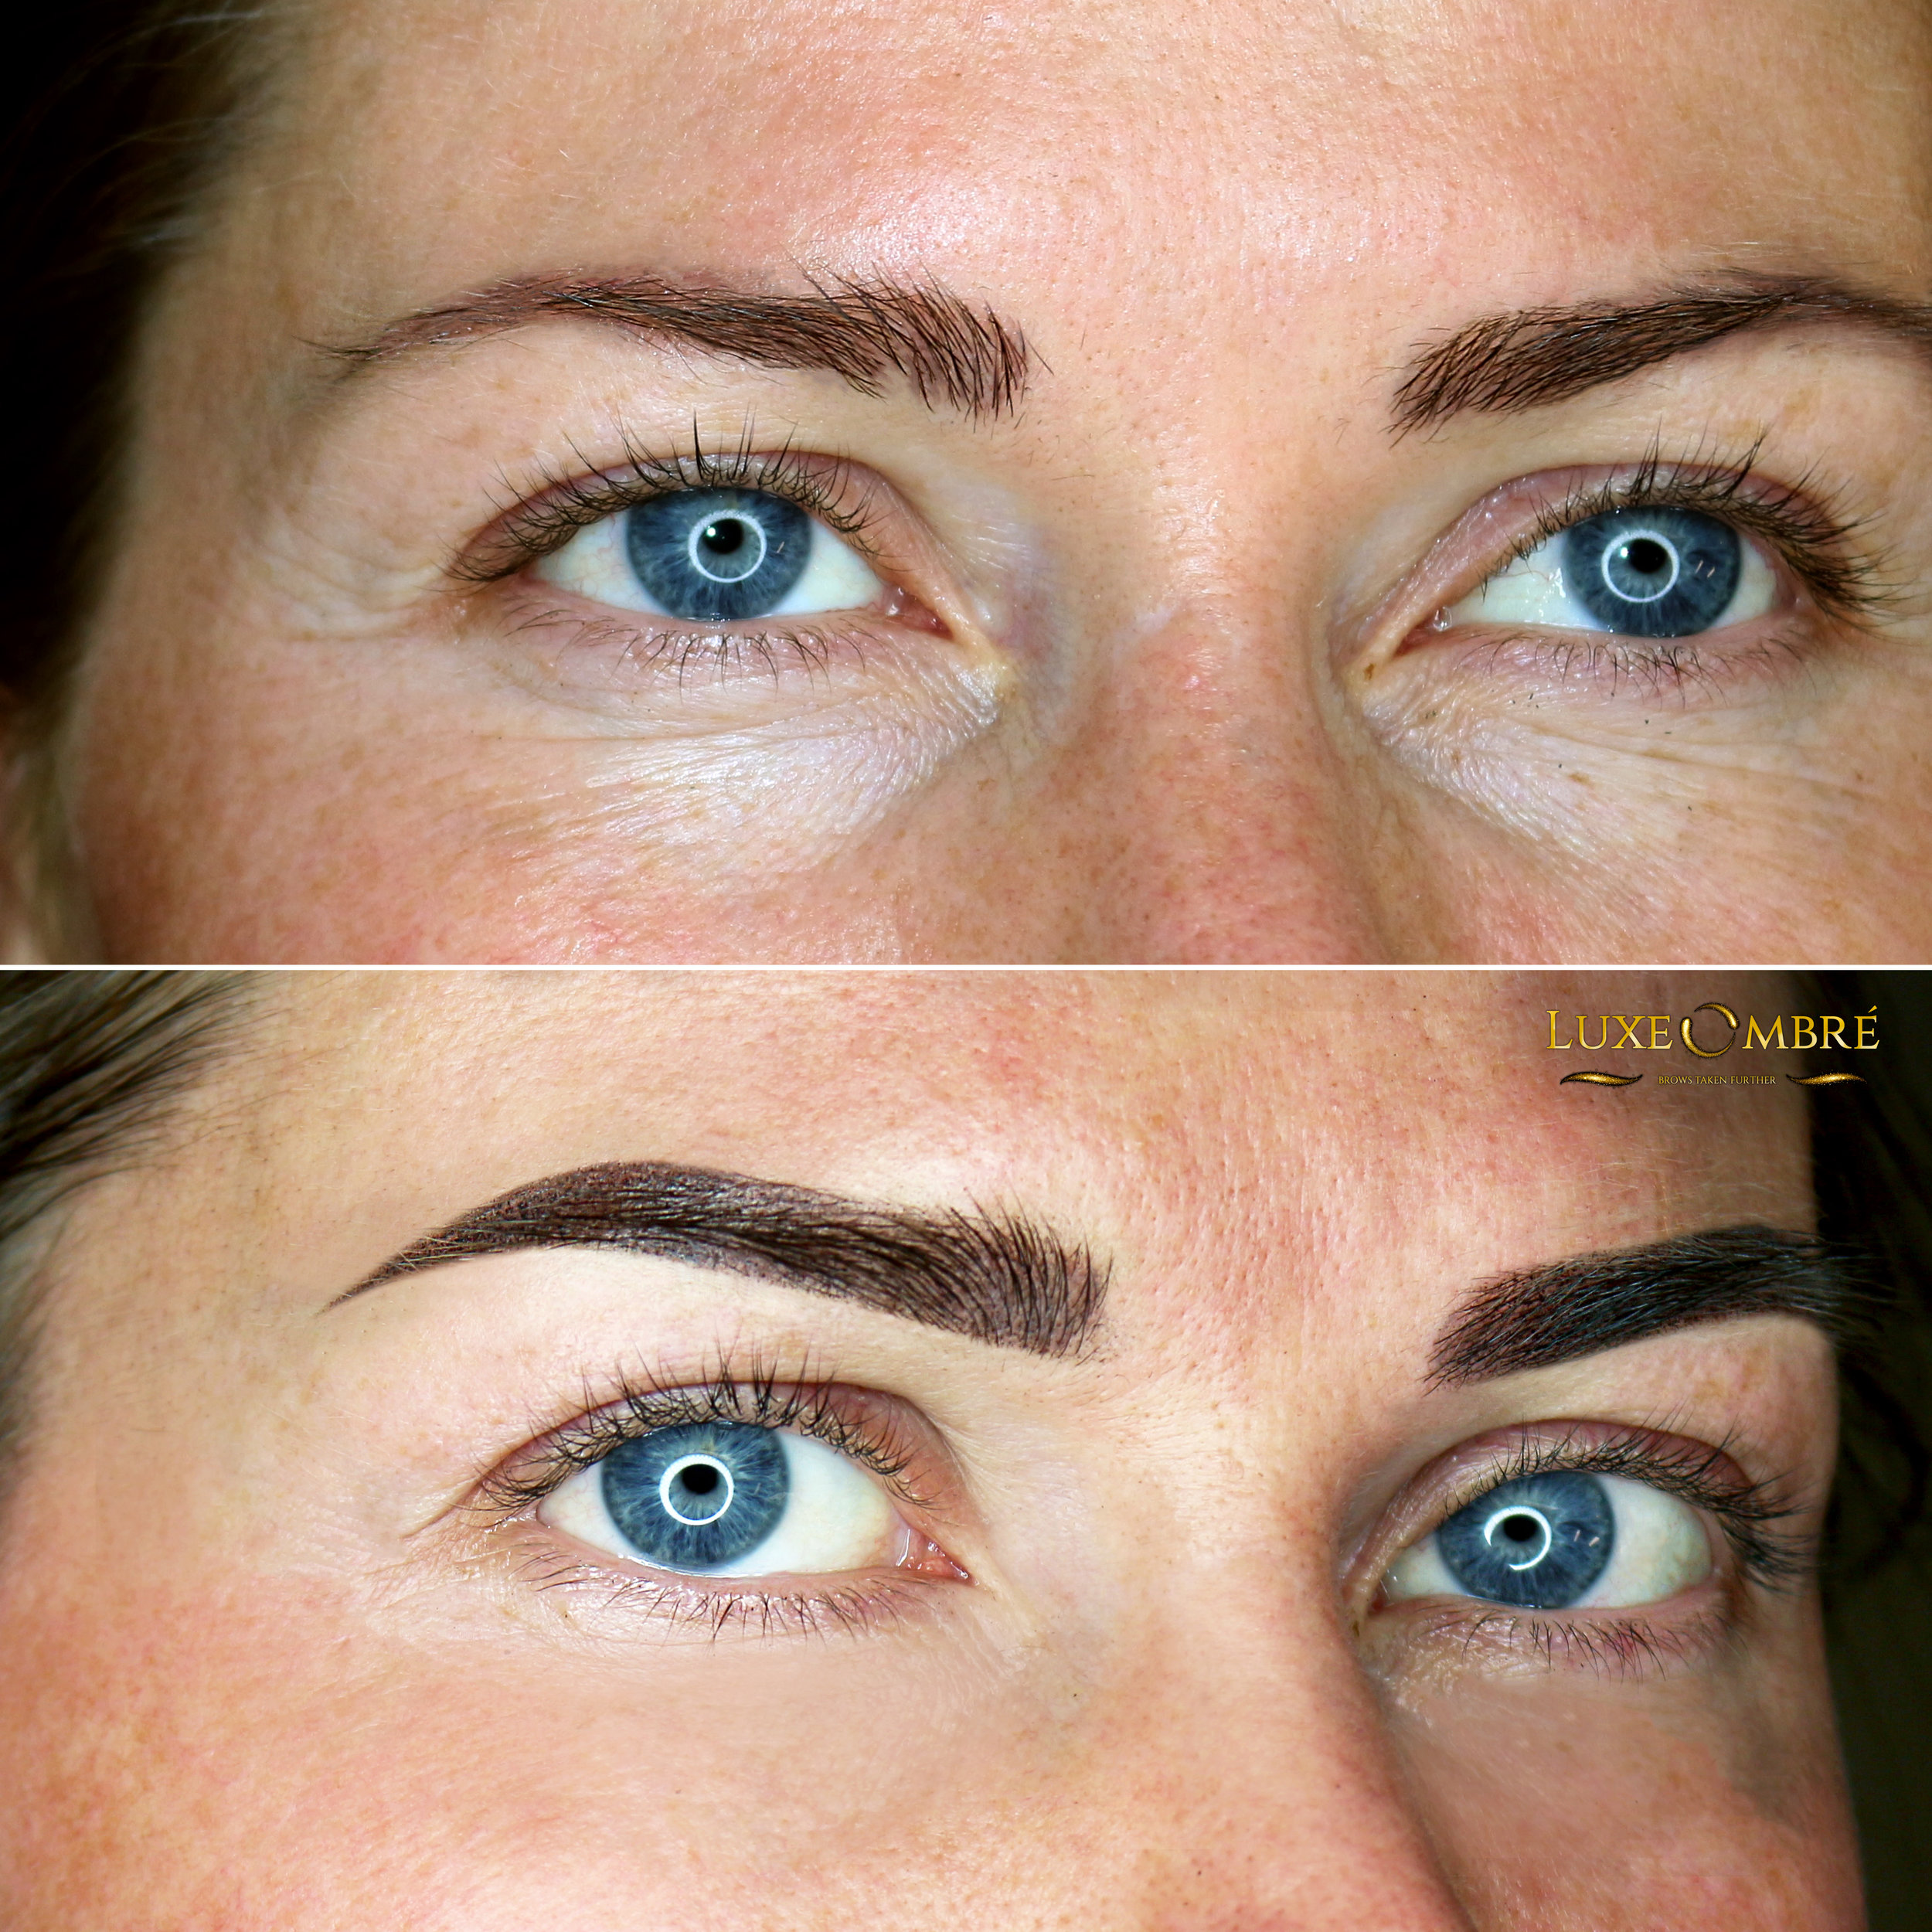 LuxeOmbre brows created on top of old pigmentation on weak brows.